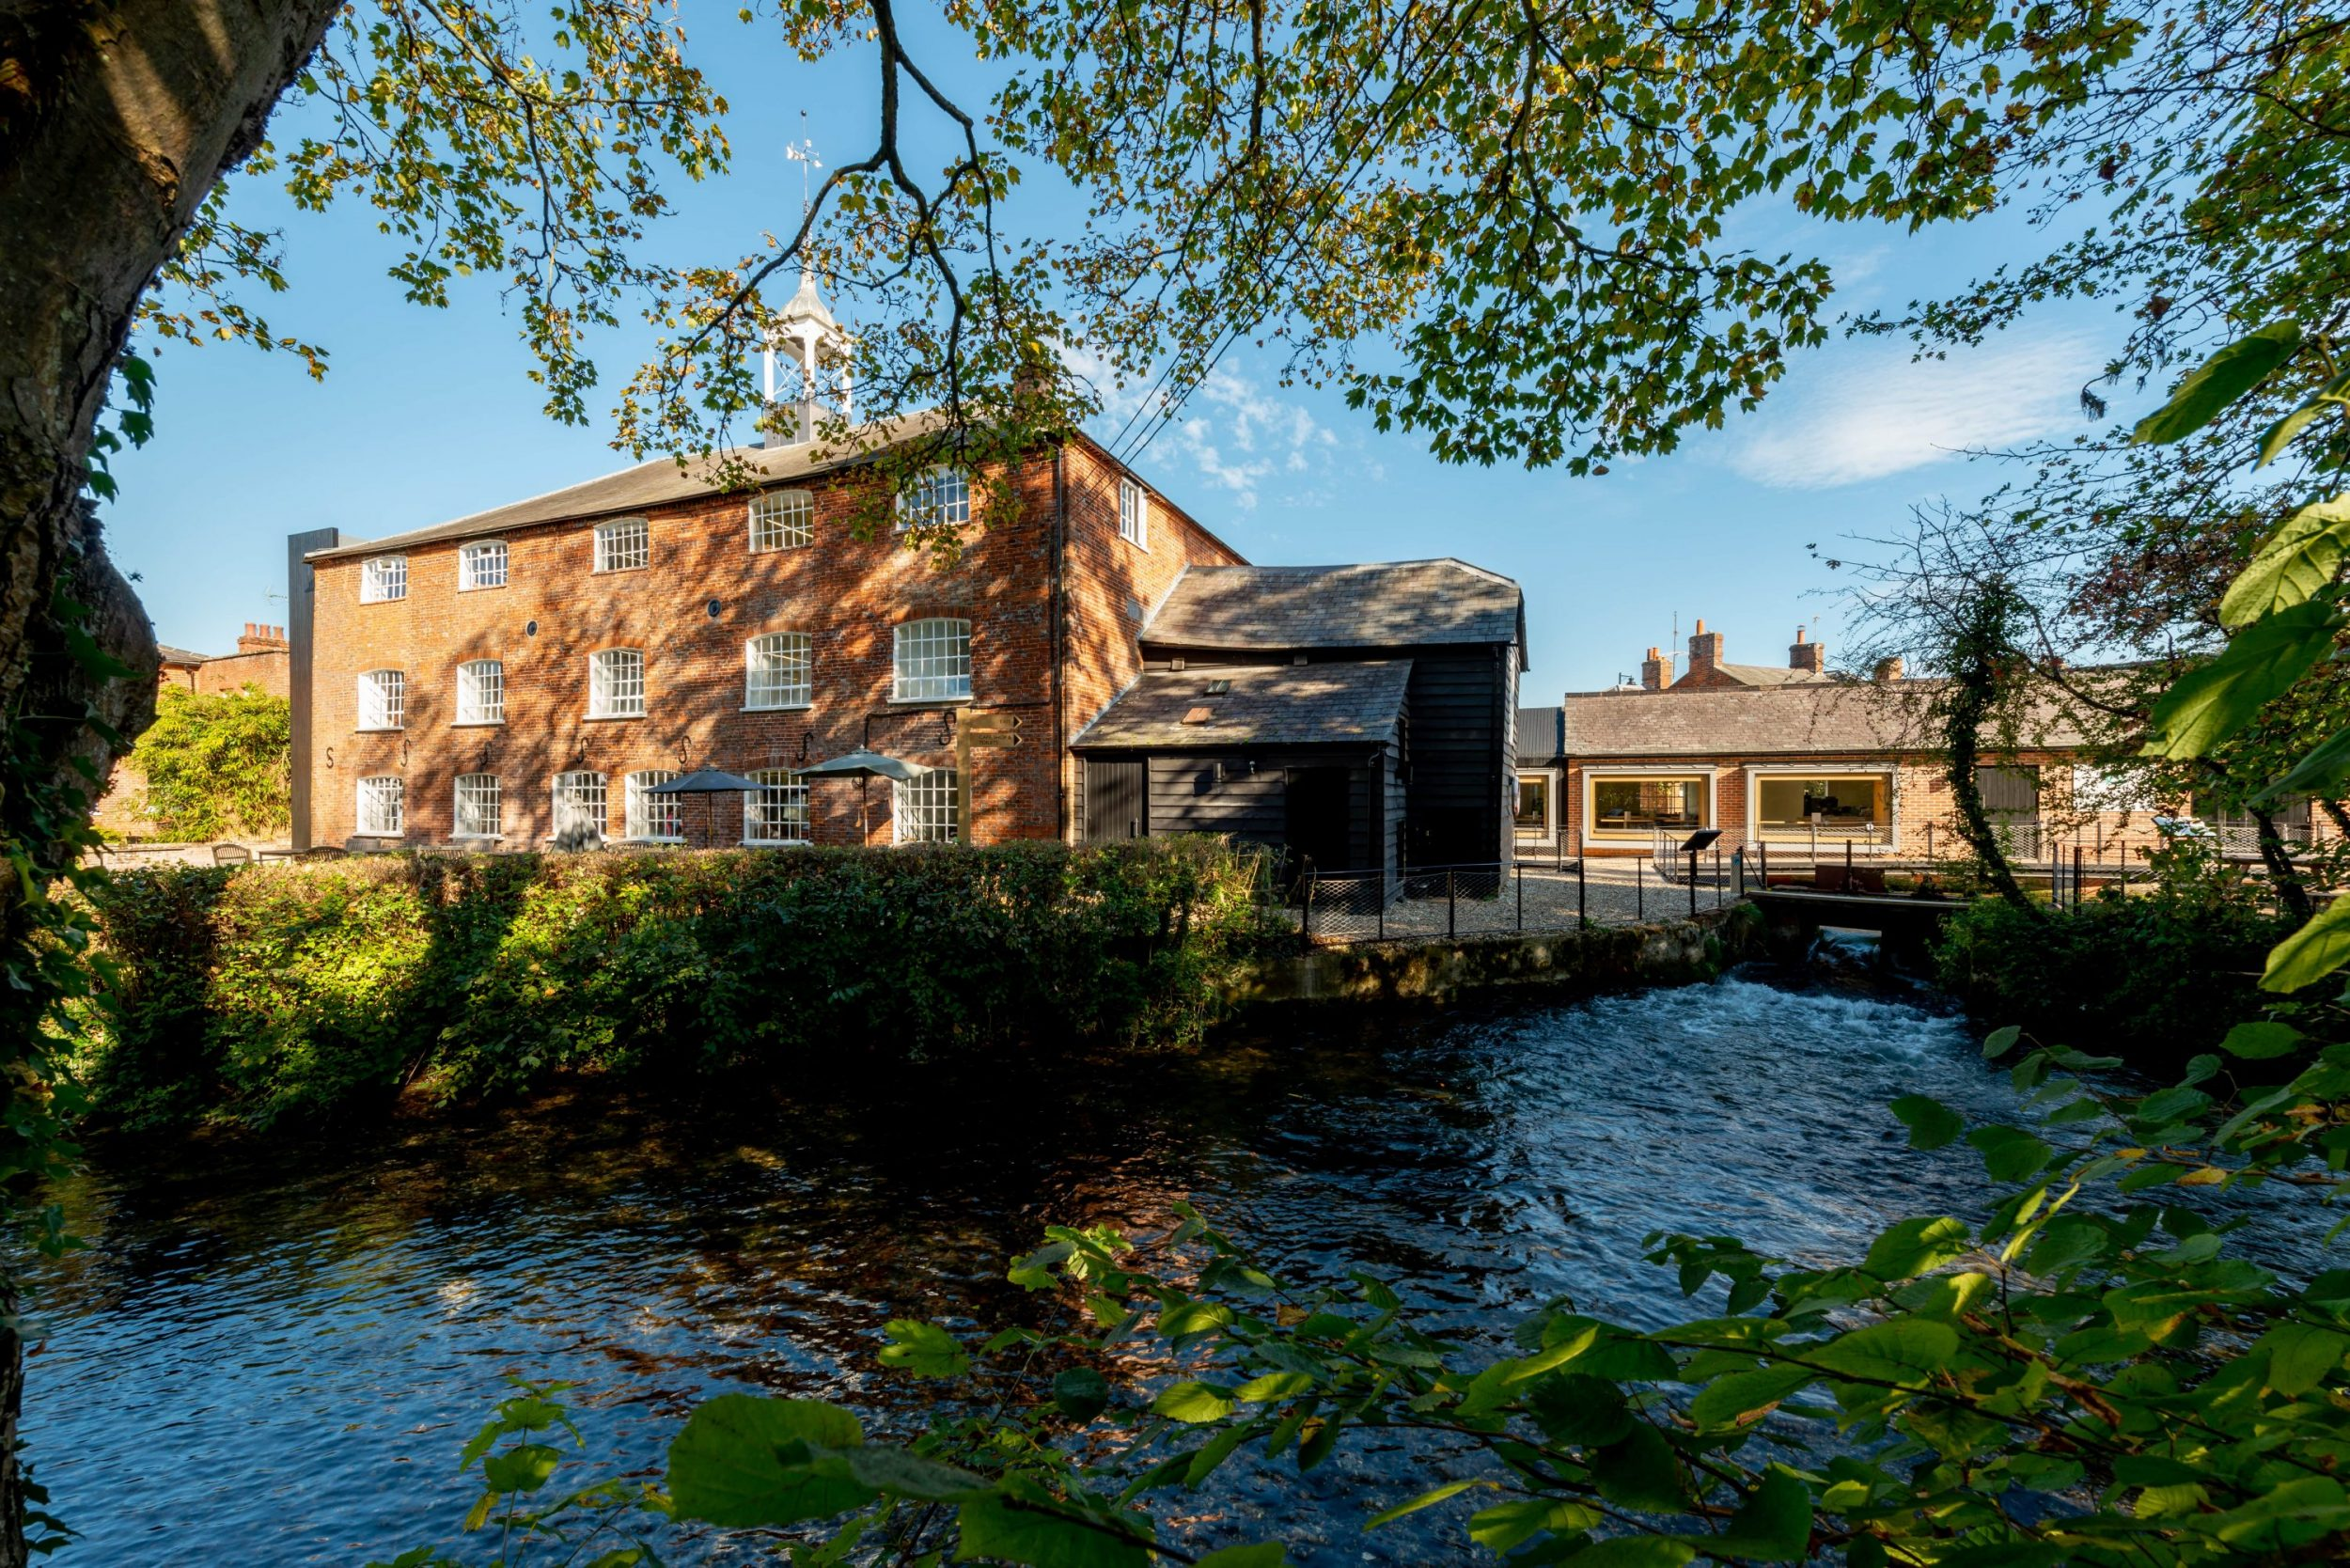 Ways to enjoy the River Test in and around Whitchurch Silk Mill #2